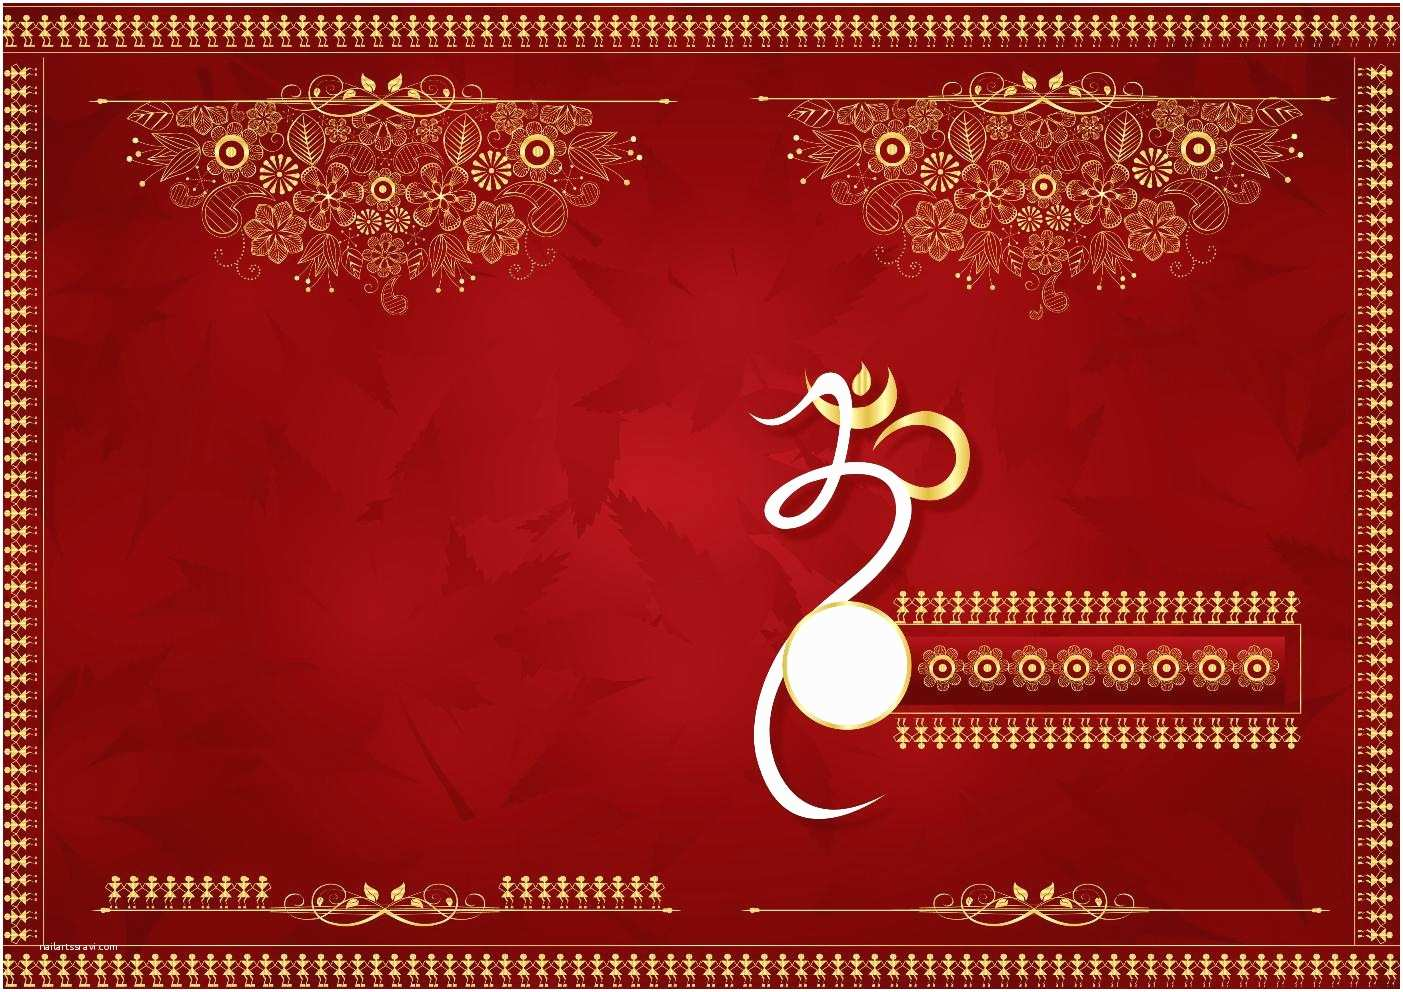 Indian Wedding Invitation Designs Free Download Cool Small Wedding Card Design Poeple Picture